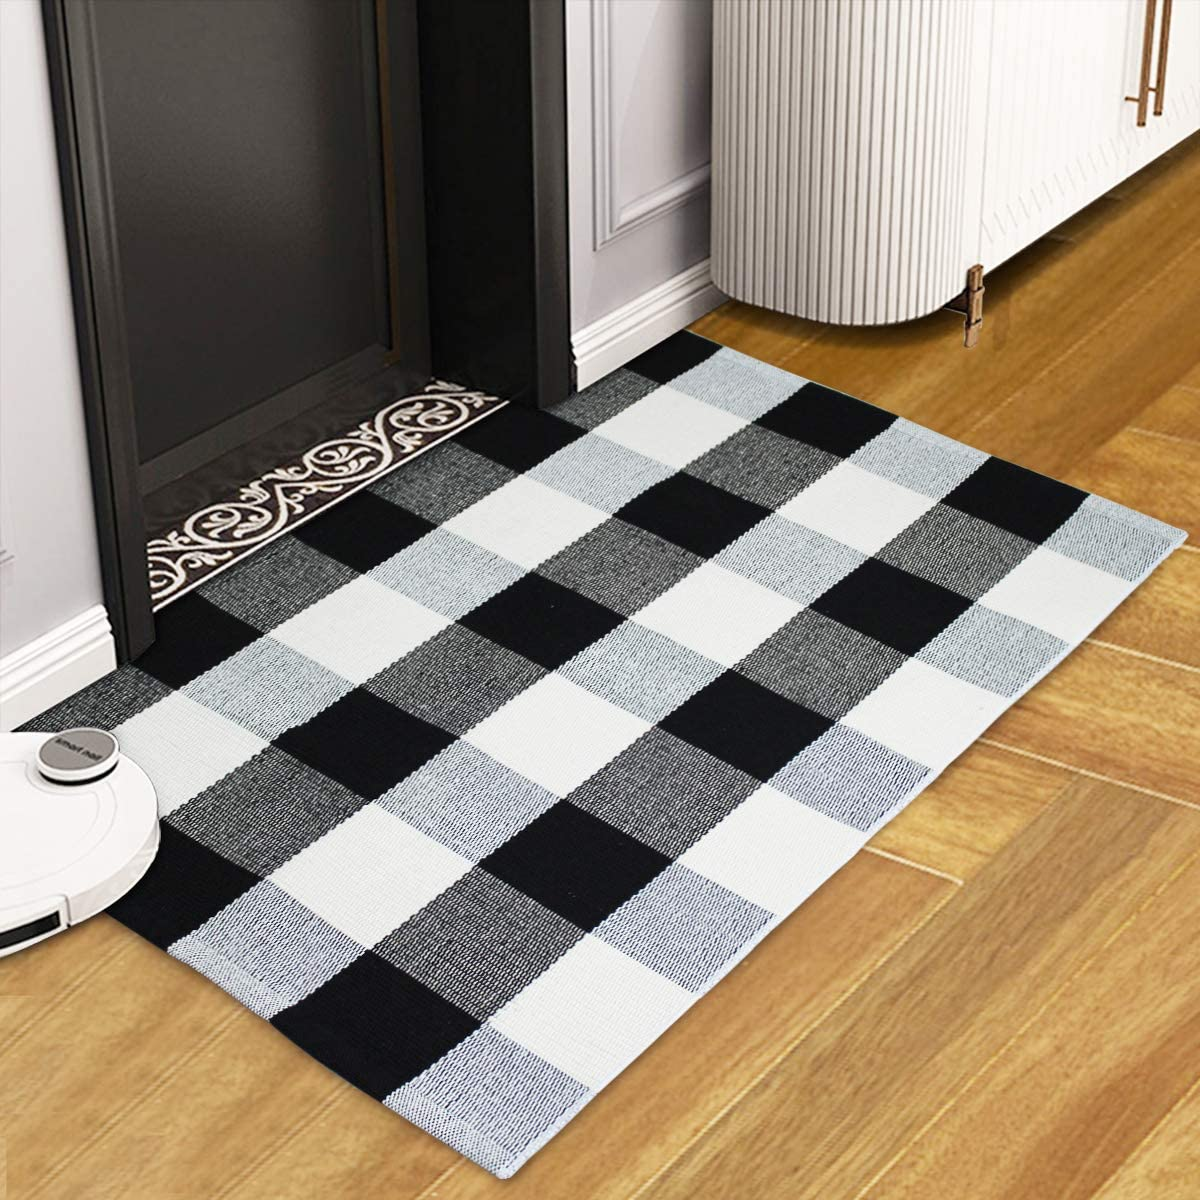 UVOGOM Cotton Buffalo Plaid Rug Front Door Mat Outdoor Welcome Indoor Doormat Entryway Checkered Mats for Porch Bathroom Bedroom Farmhouse Kitchen Laundry Room Decor